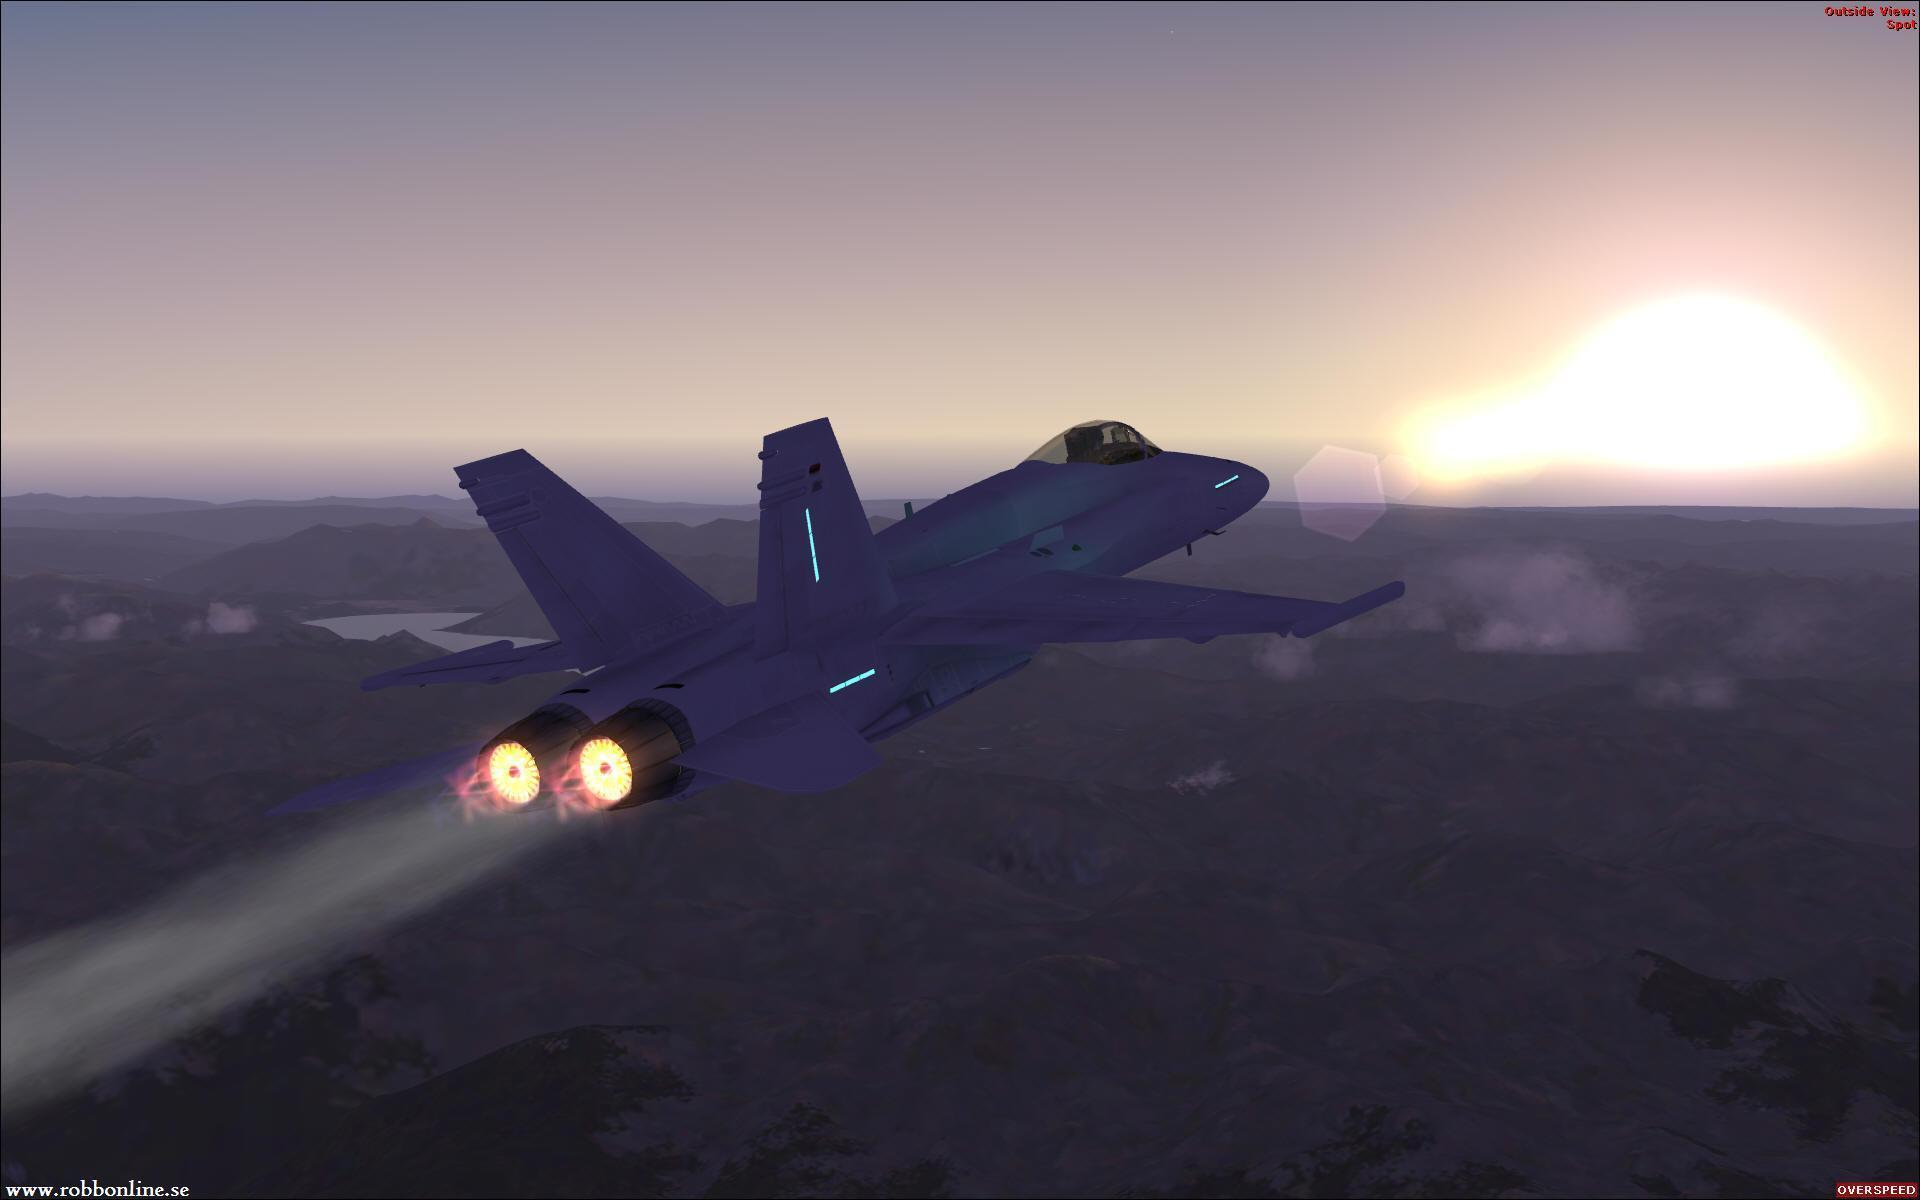 Flight Simulator X Wallpaper: F 18 Wallpapers